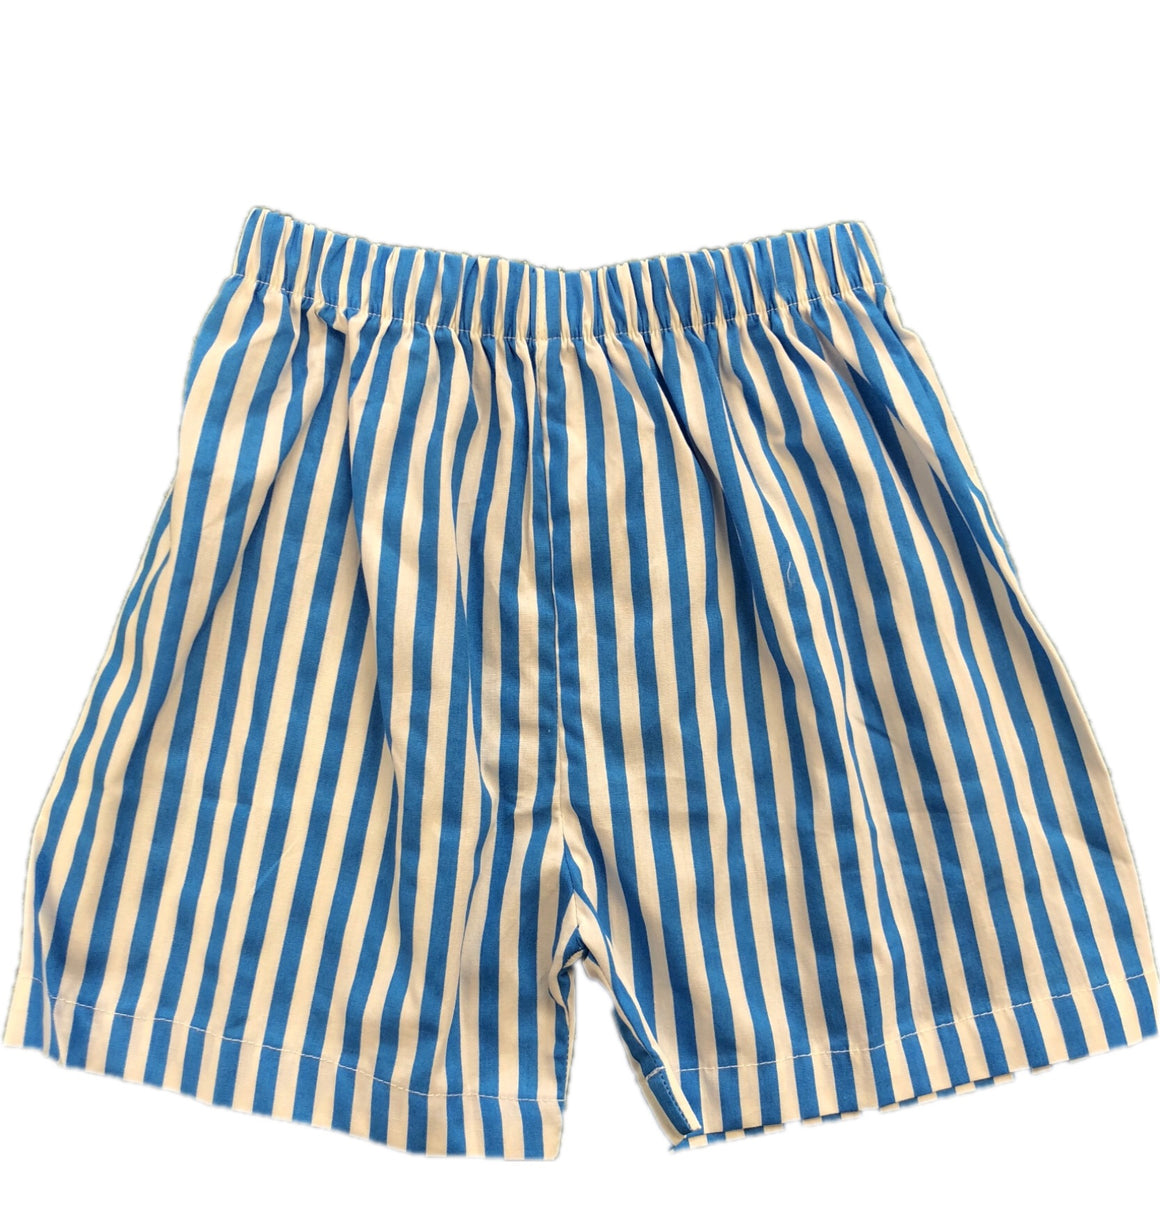 Aqua Stripe SHORTS ONLY